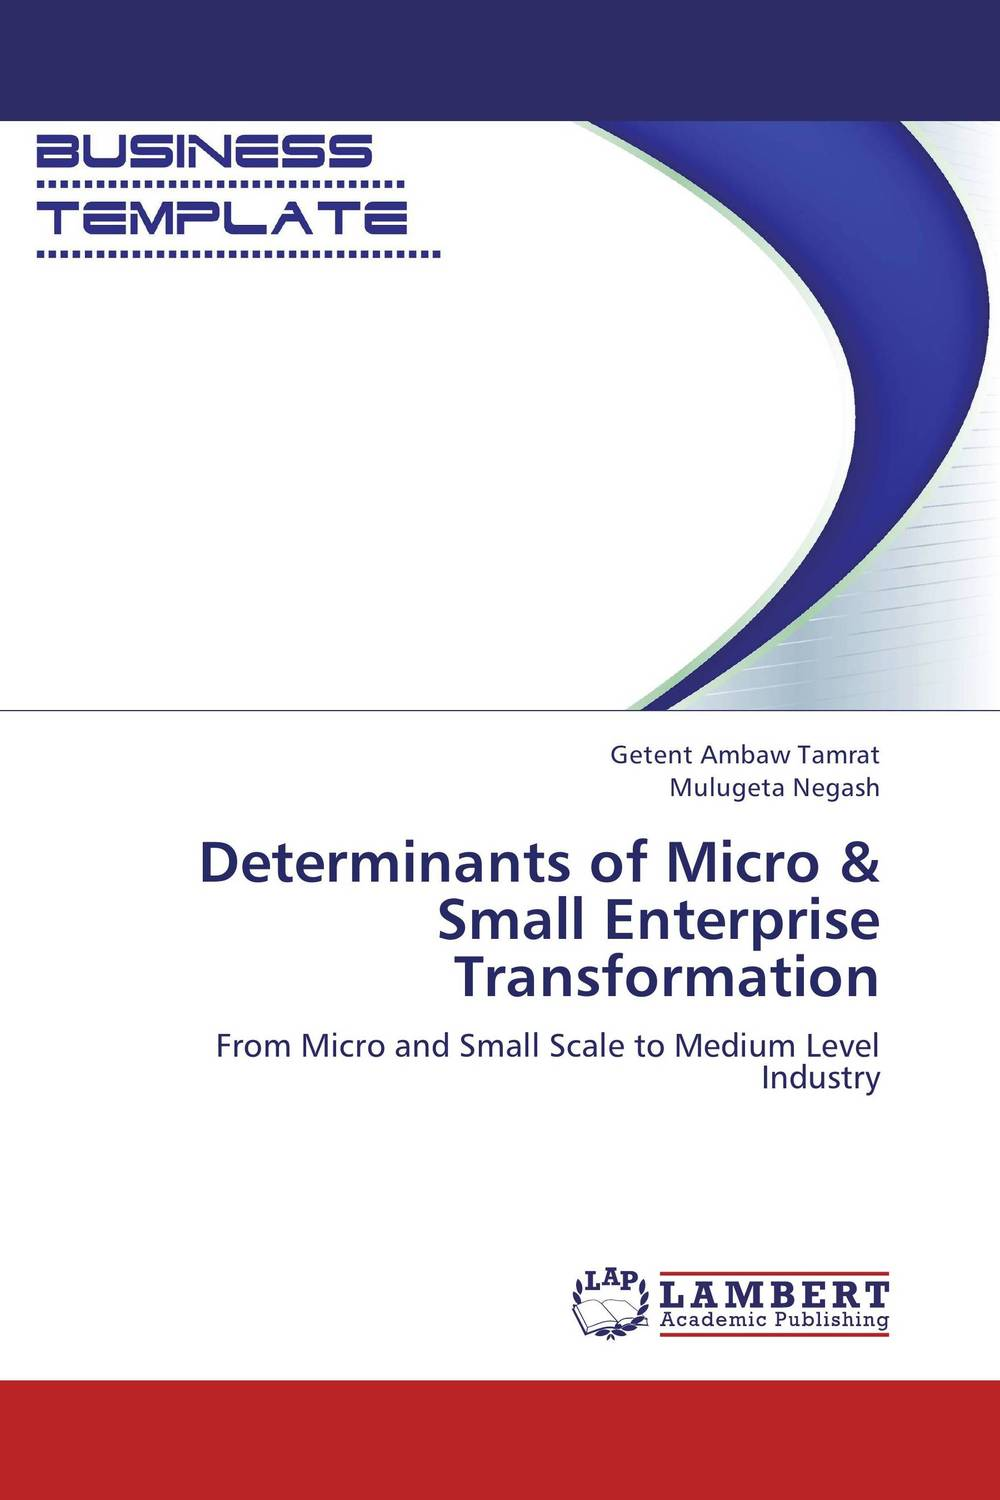 Determinants of Micro & Small Enterprise Transformation jaynal ud din ahmed and mohd abdul rashid institutional finance for micro and small entreprises in india